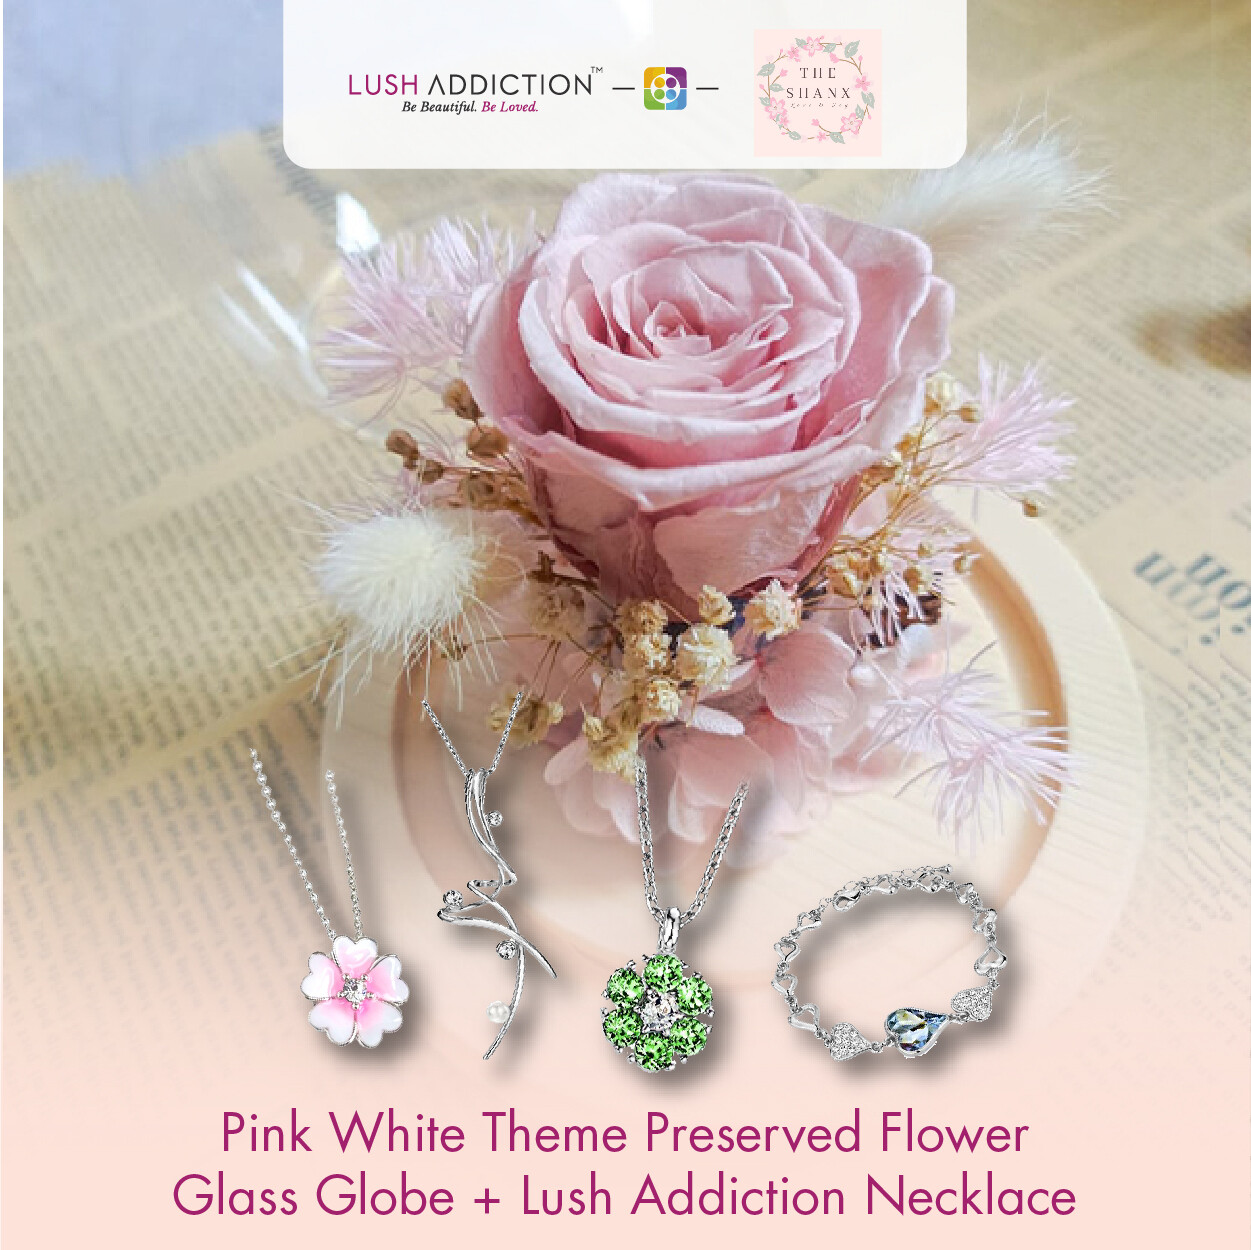 Pink White Theme Preserved Flower Glass Globe + Lush Addiction Necklace (By: The Shanx Florist from Melaka)